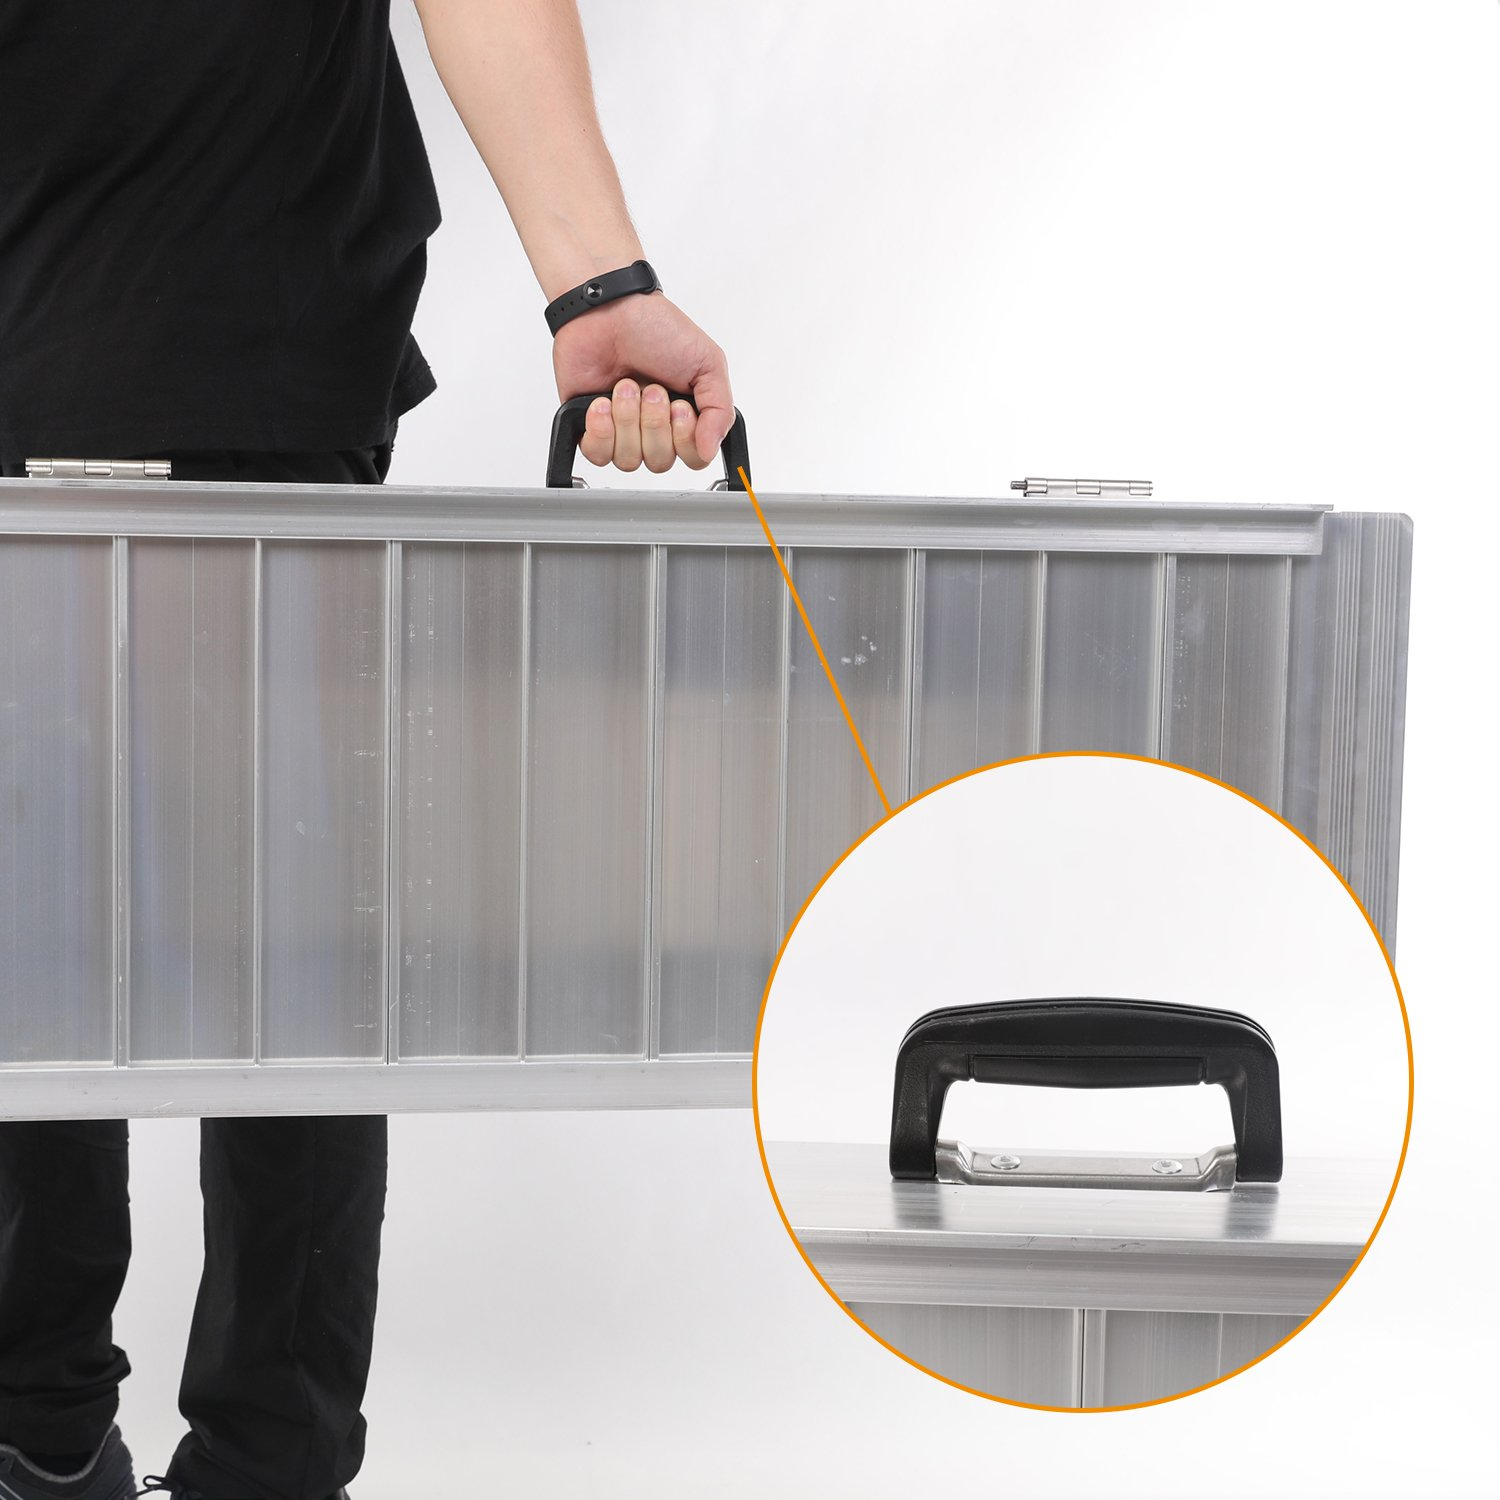 Portable Aluminum Wheelchair Ramp Foldable Separated Mobility Scooter Traction Ramp with Carrying Handle 3 Feet by Hromee (Image #3)